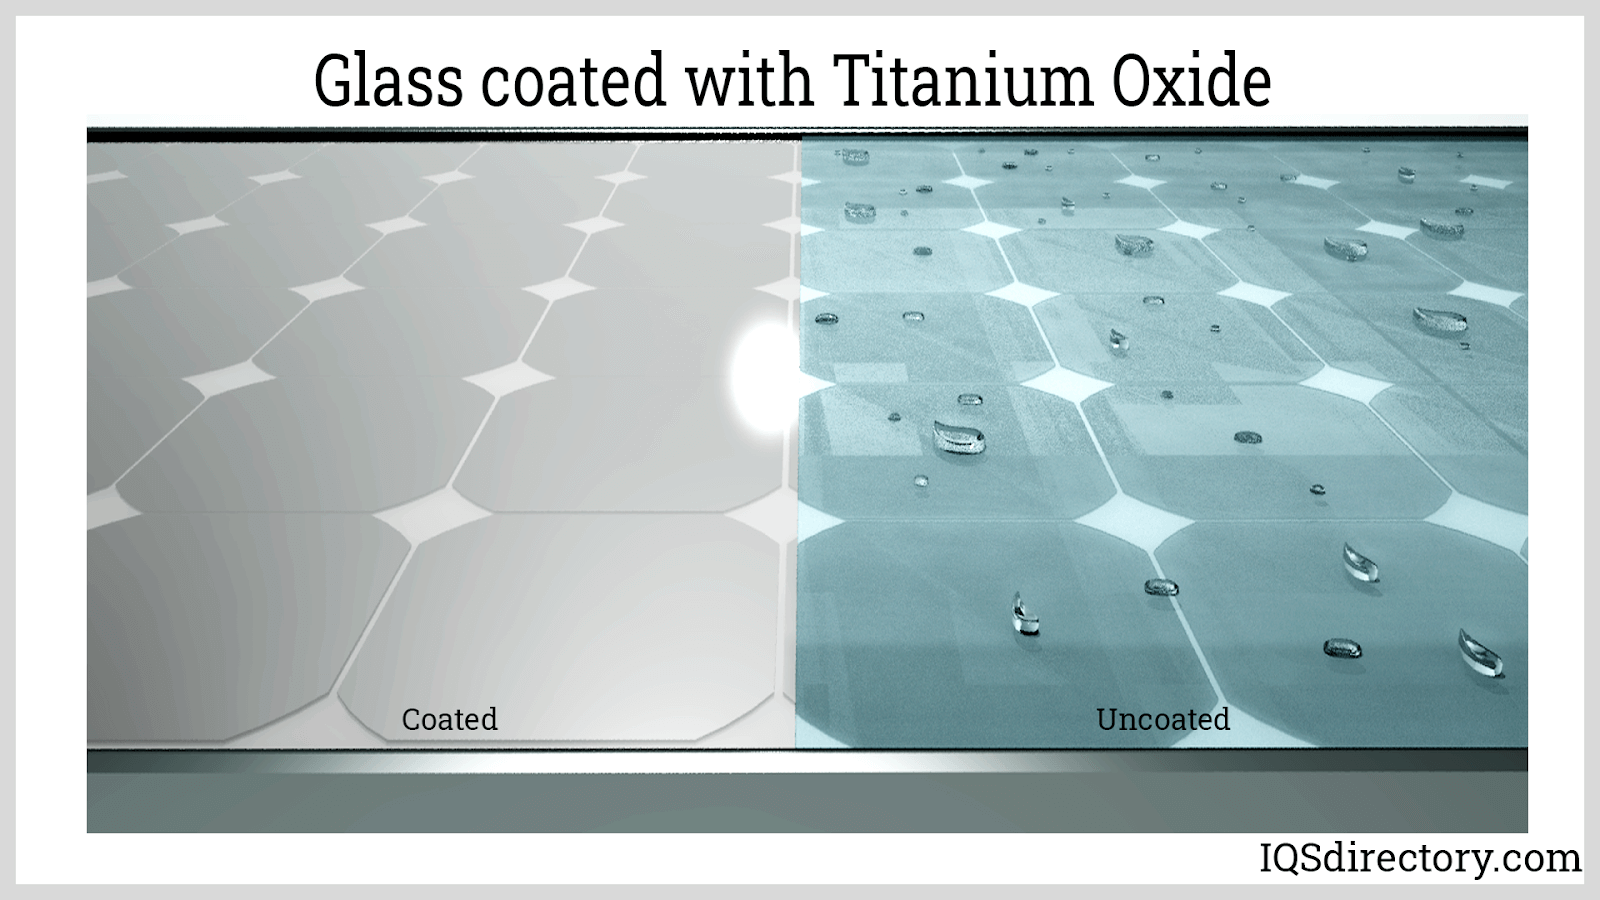 Glass coated with Titanium Oxide